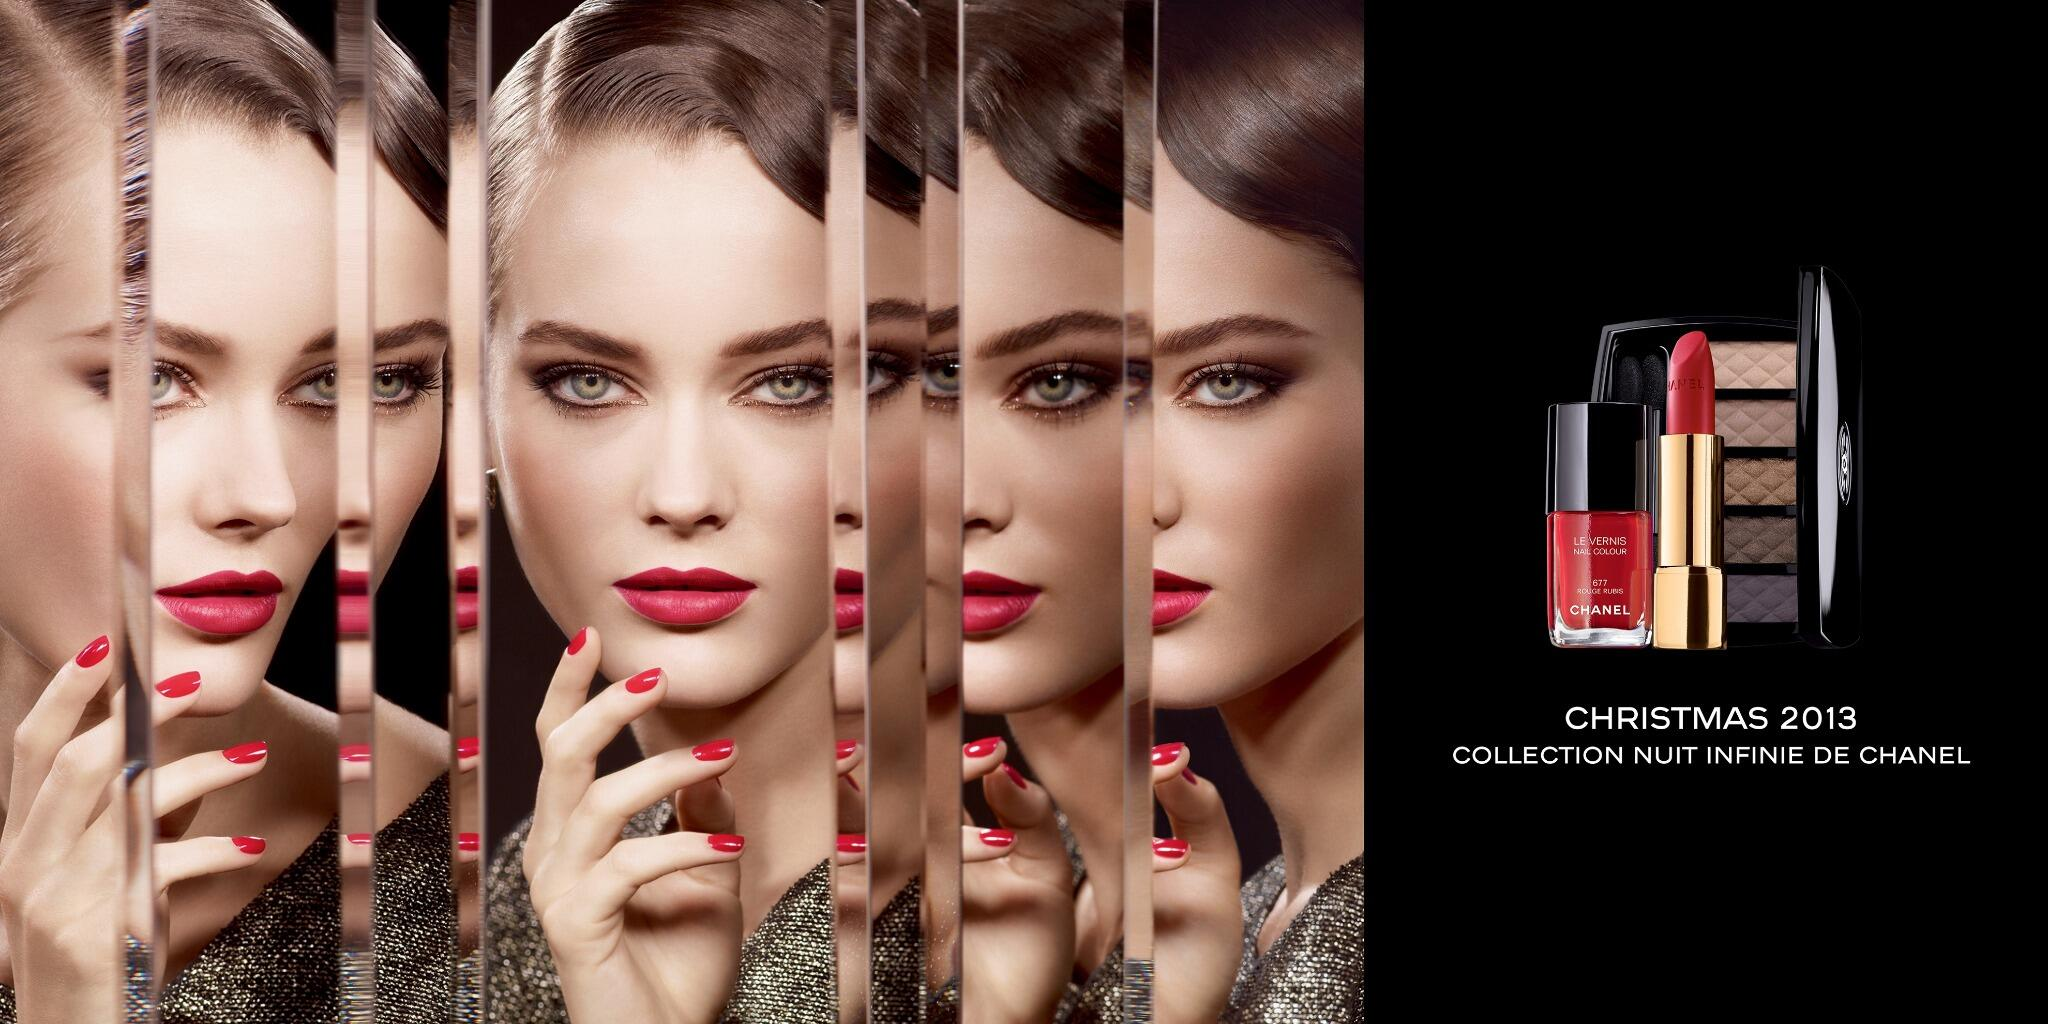 Charming, mysterious or seductive? The new Christmas makeup collection Nuit Infinie de CHANEL, for an endless evening http://t.co/eaaxec70Y3